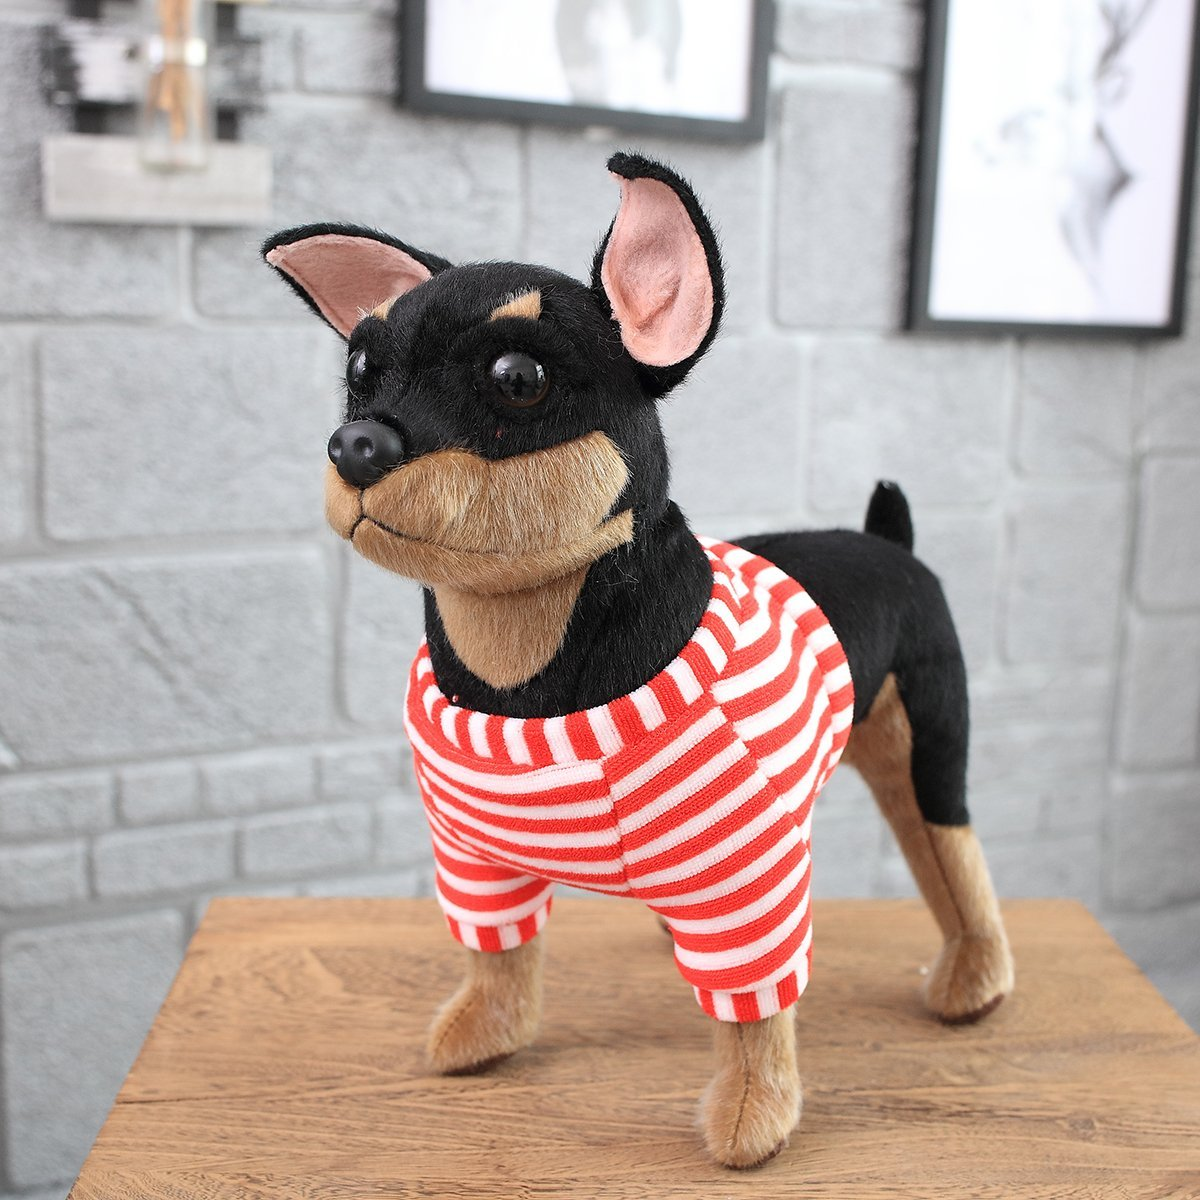 Realistic Cute Stuffed Dog Toy Plush Puppy Animal Pillow Gift for Kids Manchester United Dog